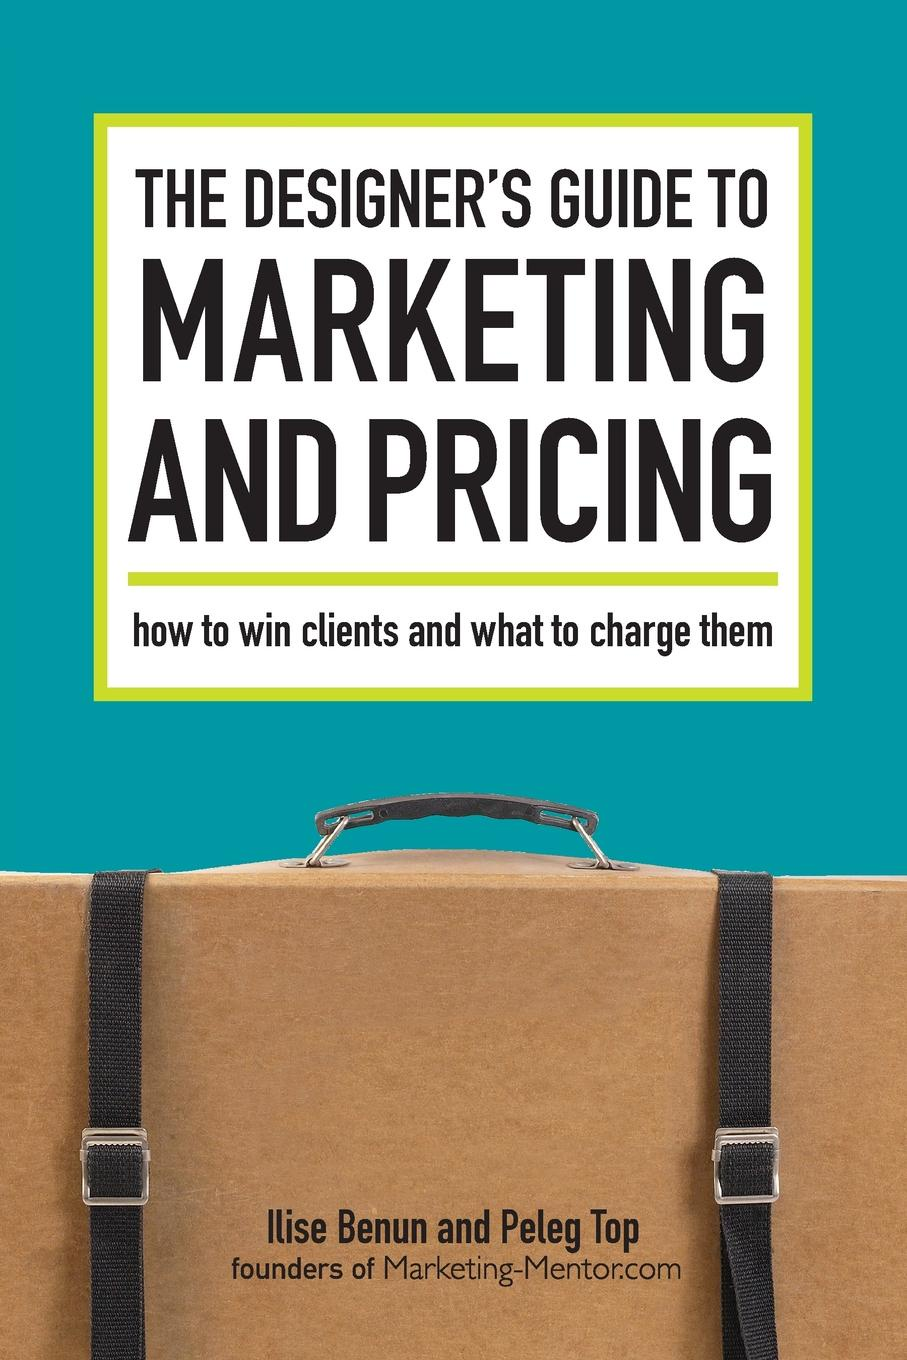 Ilise Benun, Peleg Top The Designer's Guide To Marketing And Pricing nilofer safdar money circle what choice are you willing to make today to create a different future right away